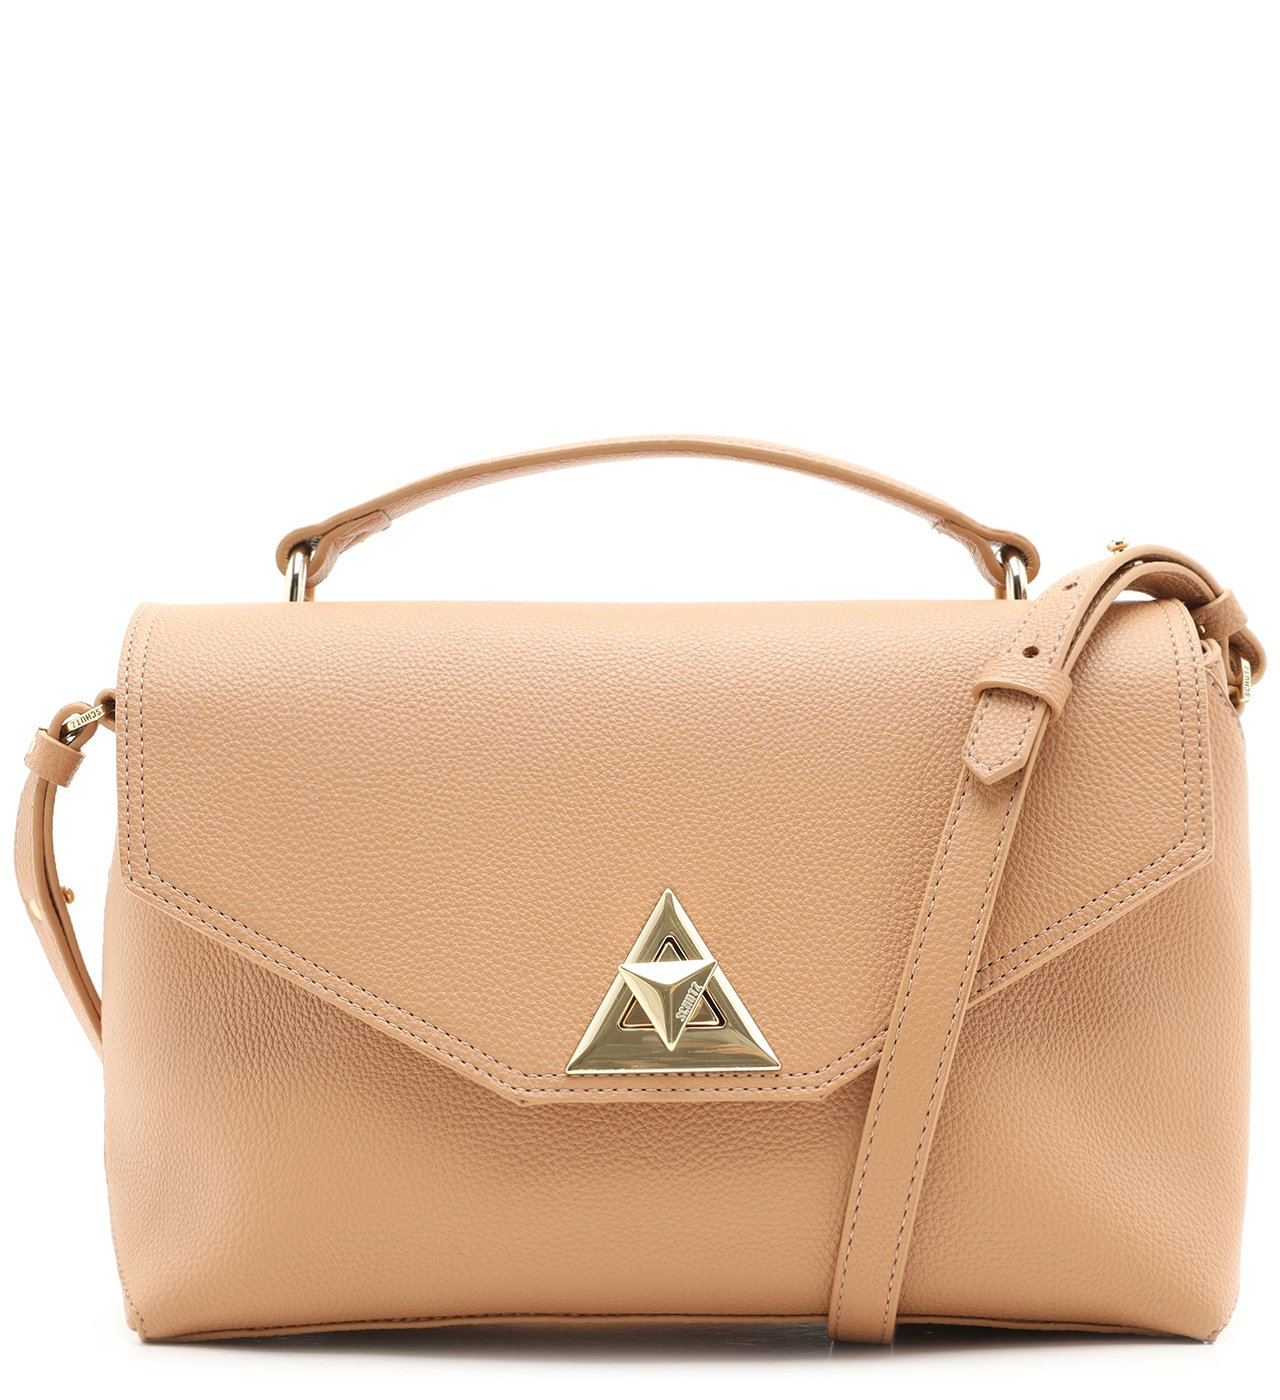 Satchel Bag Leona Honey | Schutz